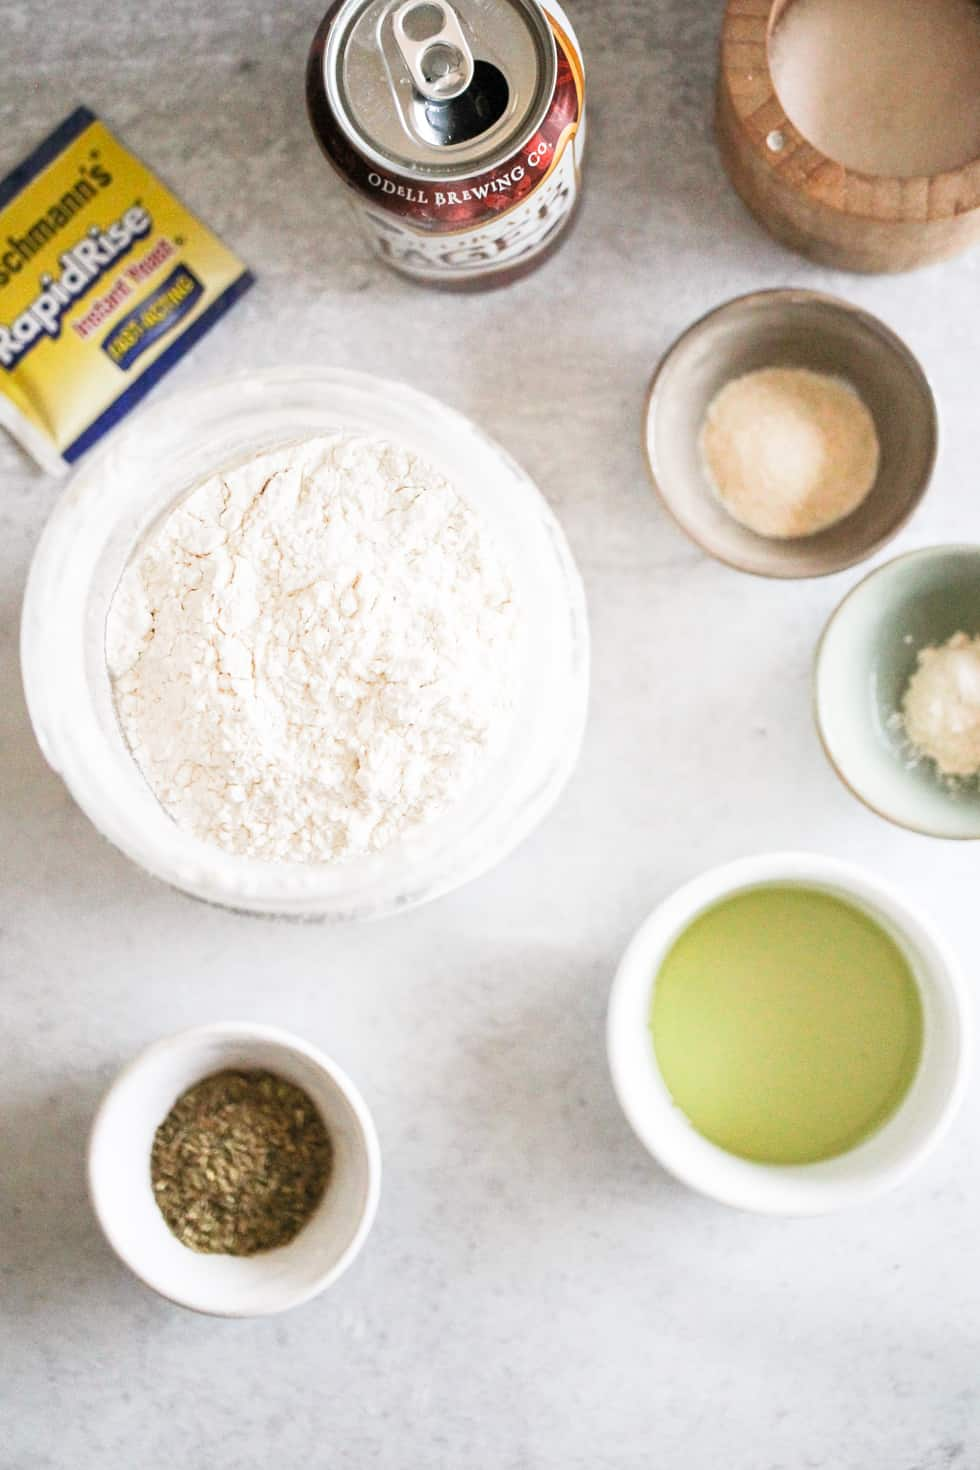 Ingredients for pizza dough, including flour, beer, oil, and instant yeast, on a grey counter.